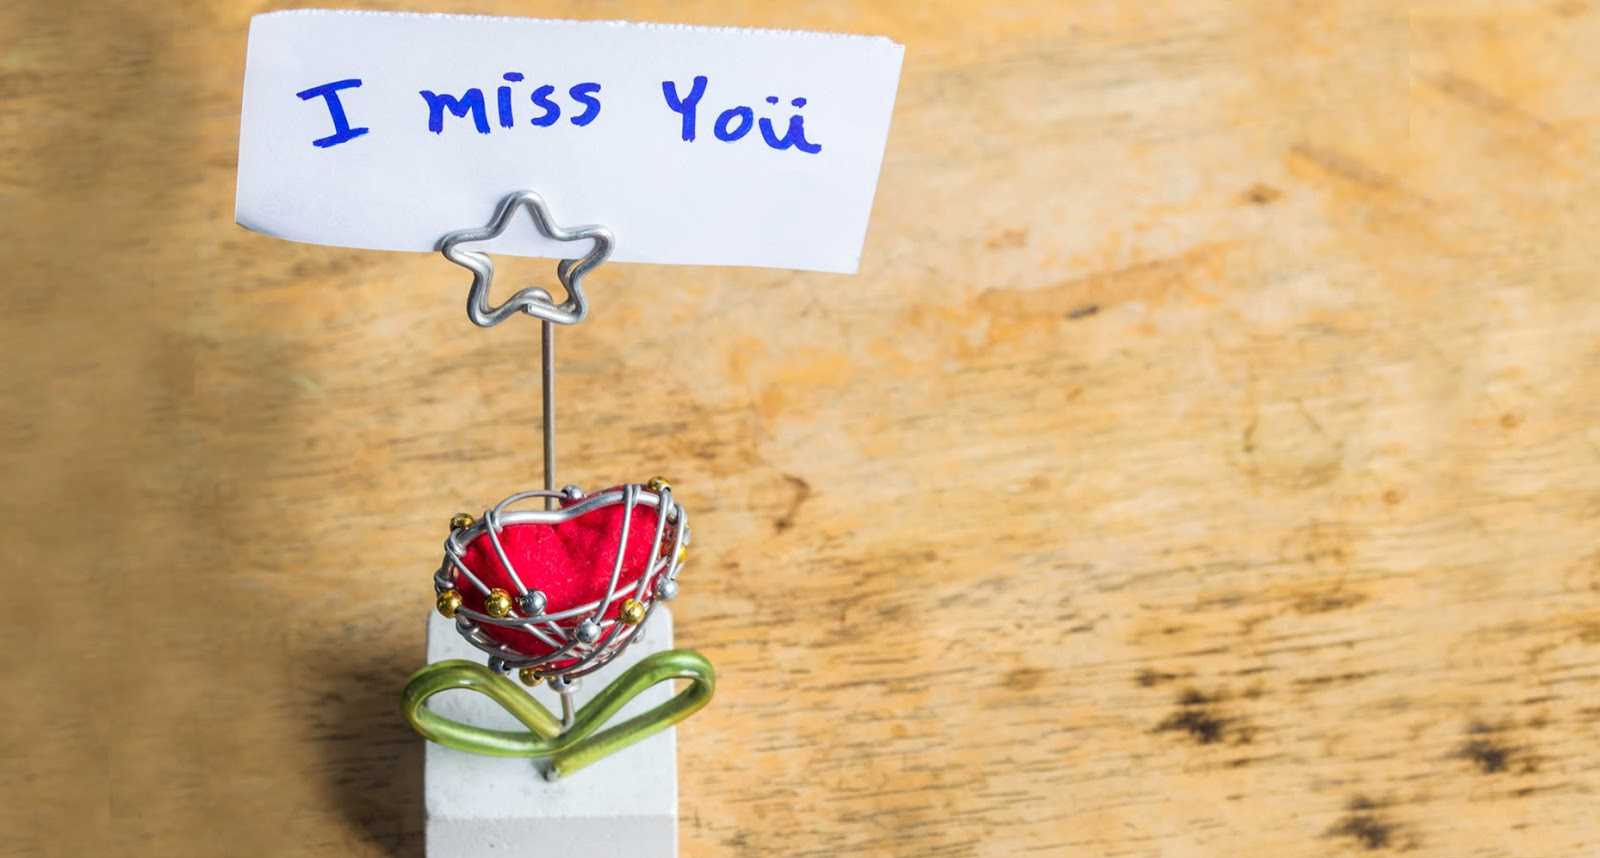 I Miss You Images HD Cool Photo